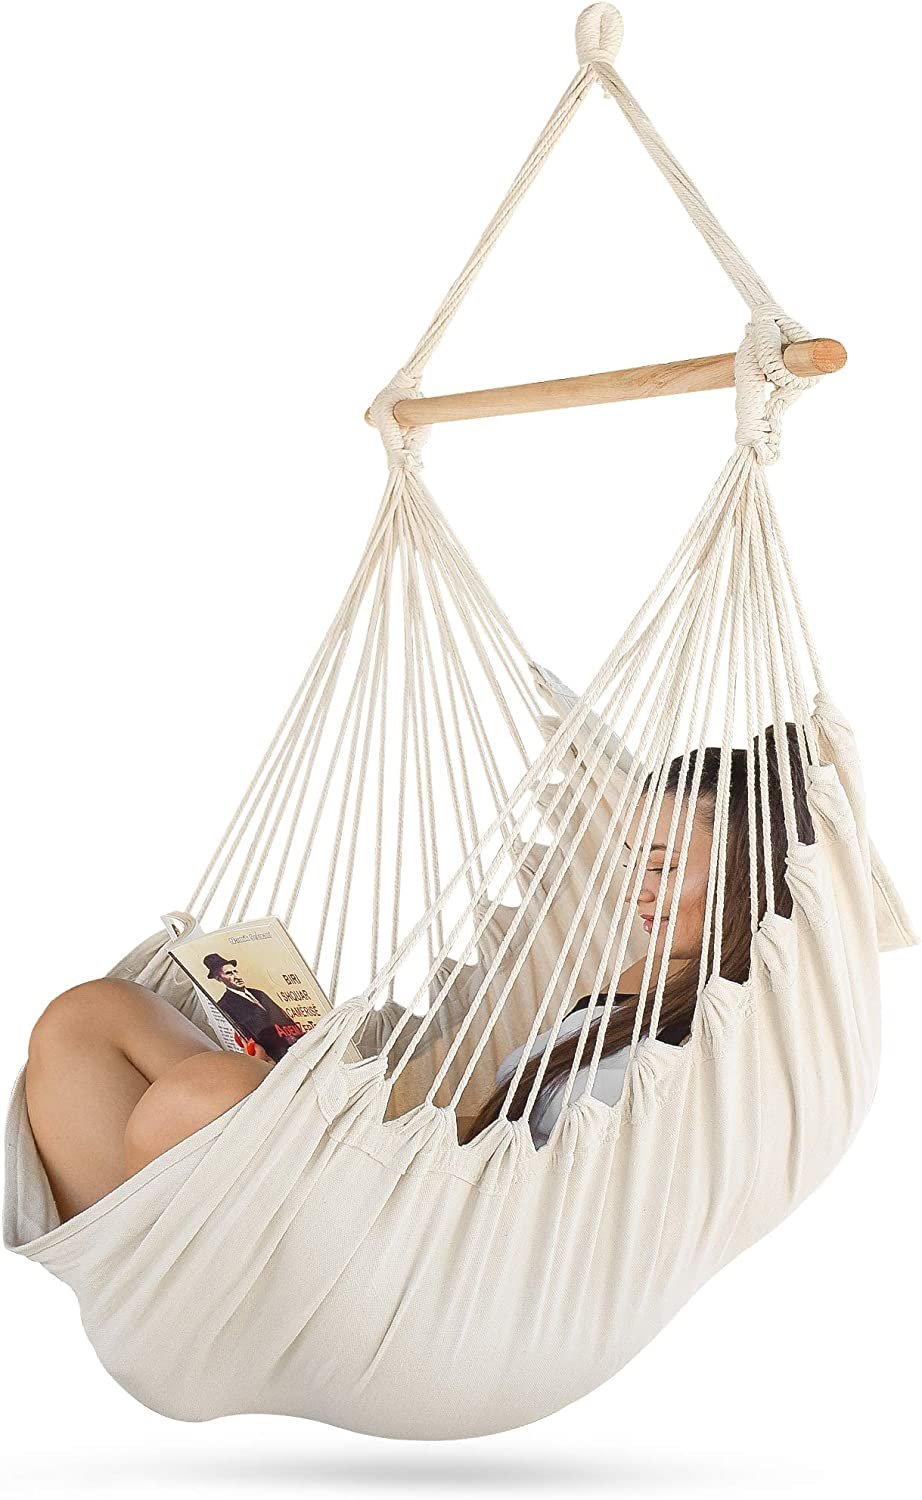 Sorbus Hammock Chair for Bedroom Indoor or Outdoor - Extra Long Swing Seat - Quality Cotton for Superior Comfort & Durability - Swinging Chairs for Yard, Porch Spaces (Beige)